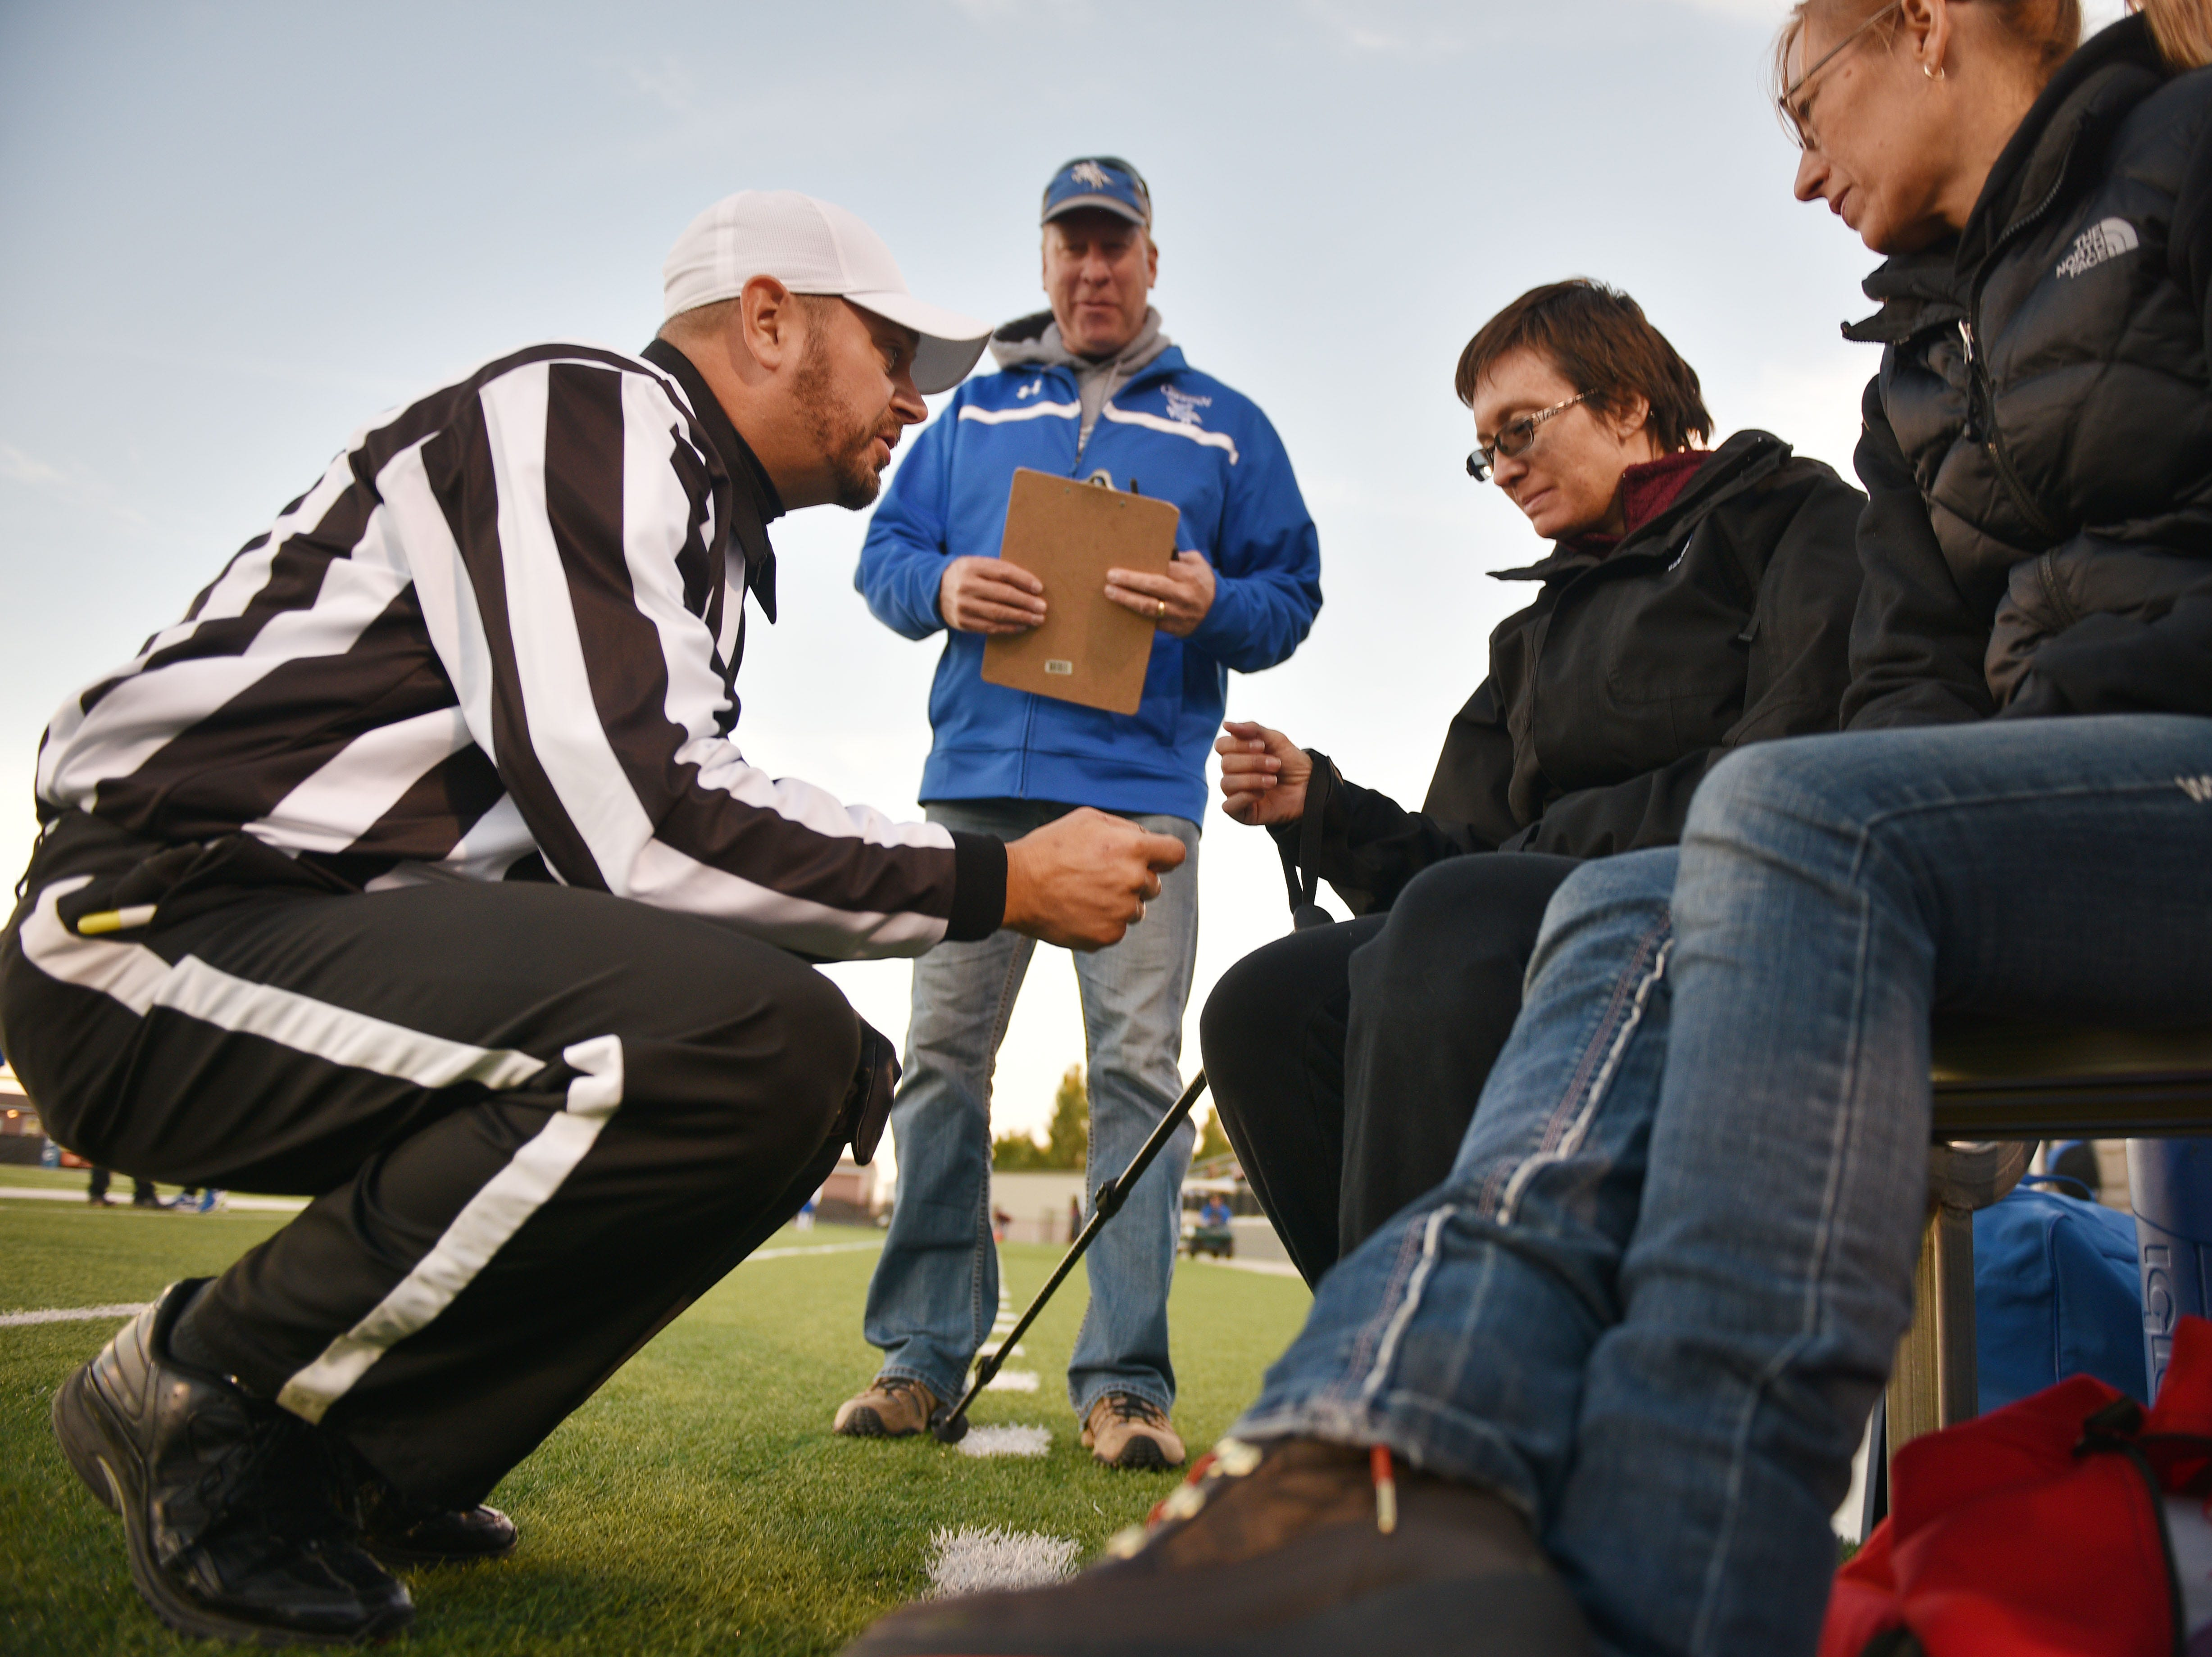 Referee Micheal Fuller and athletic director Jim Groen give Ashley Van Hemert instructions for the coin toss before the Sioux Falls Christian game, Friday Sept. 28, at Bob Young Field University Of Sioux Falls Stadium.